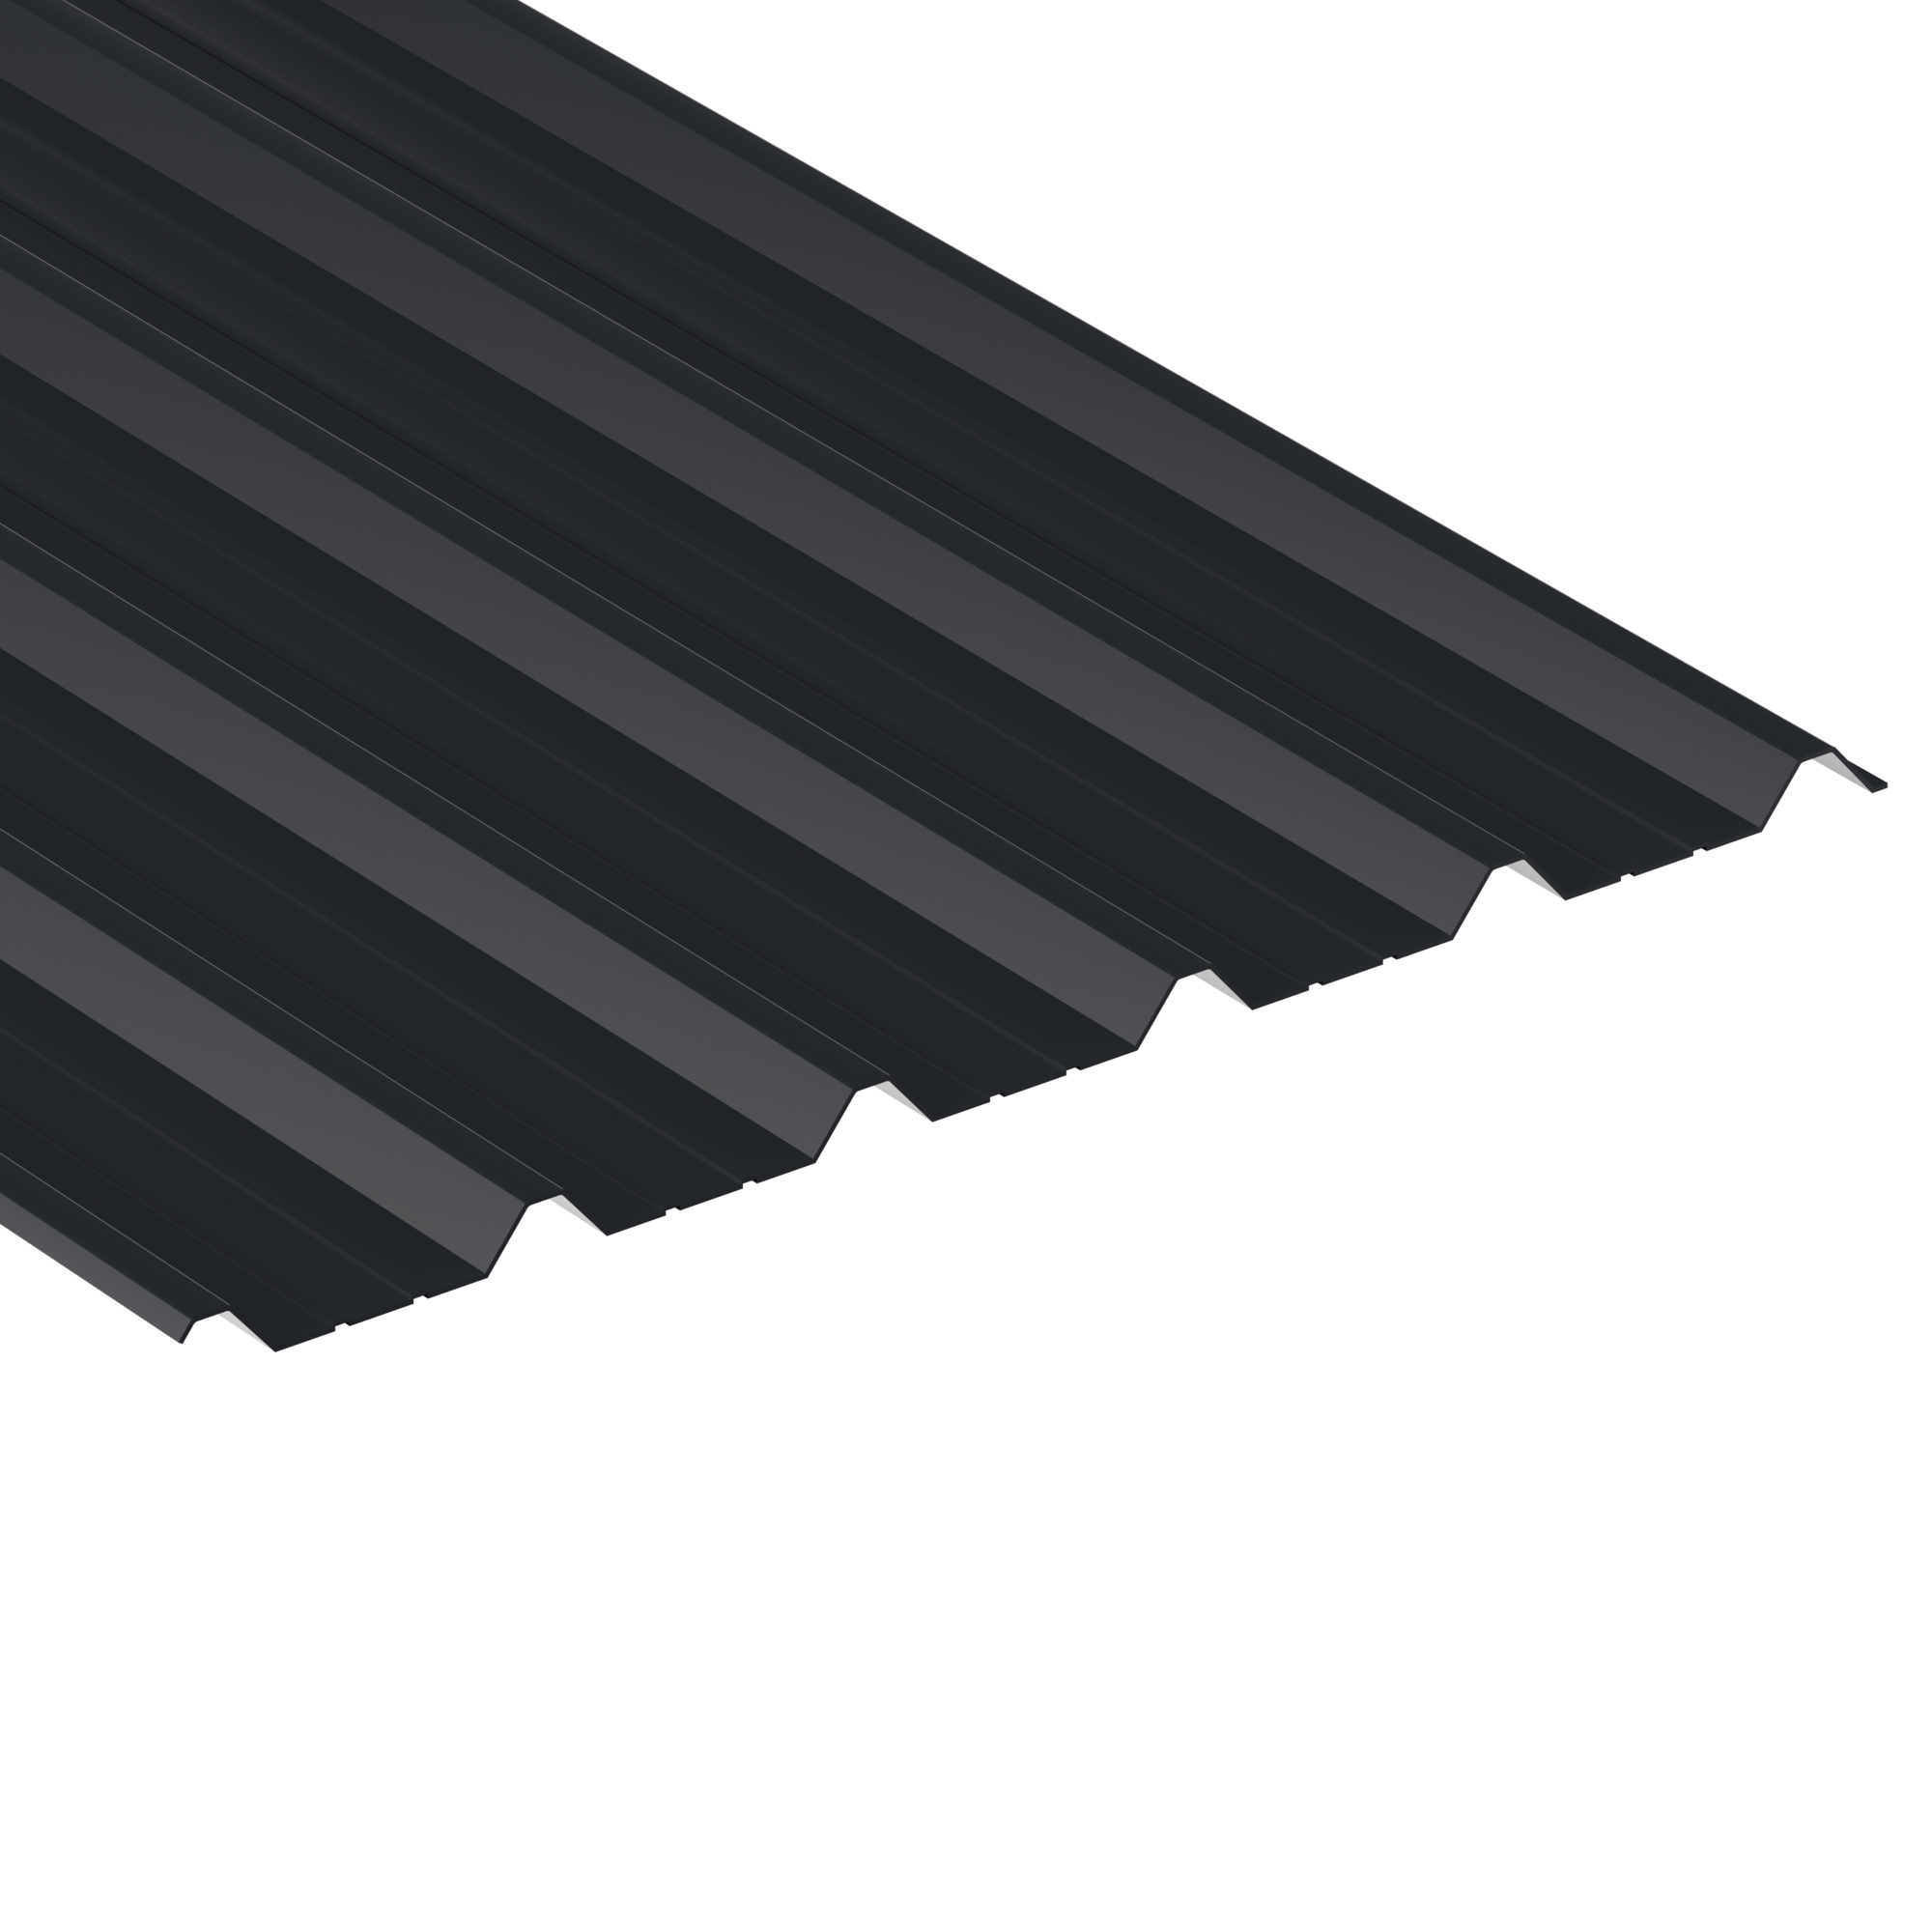 Anthracite Grey Polyester coated box profile